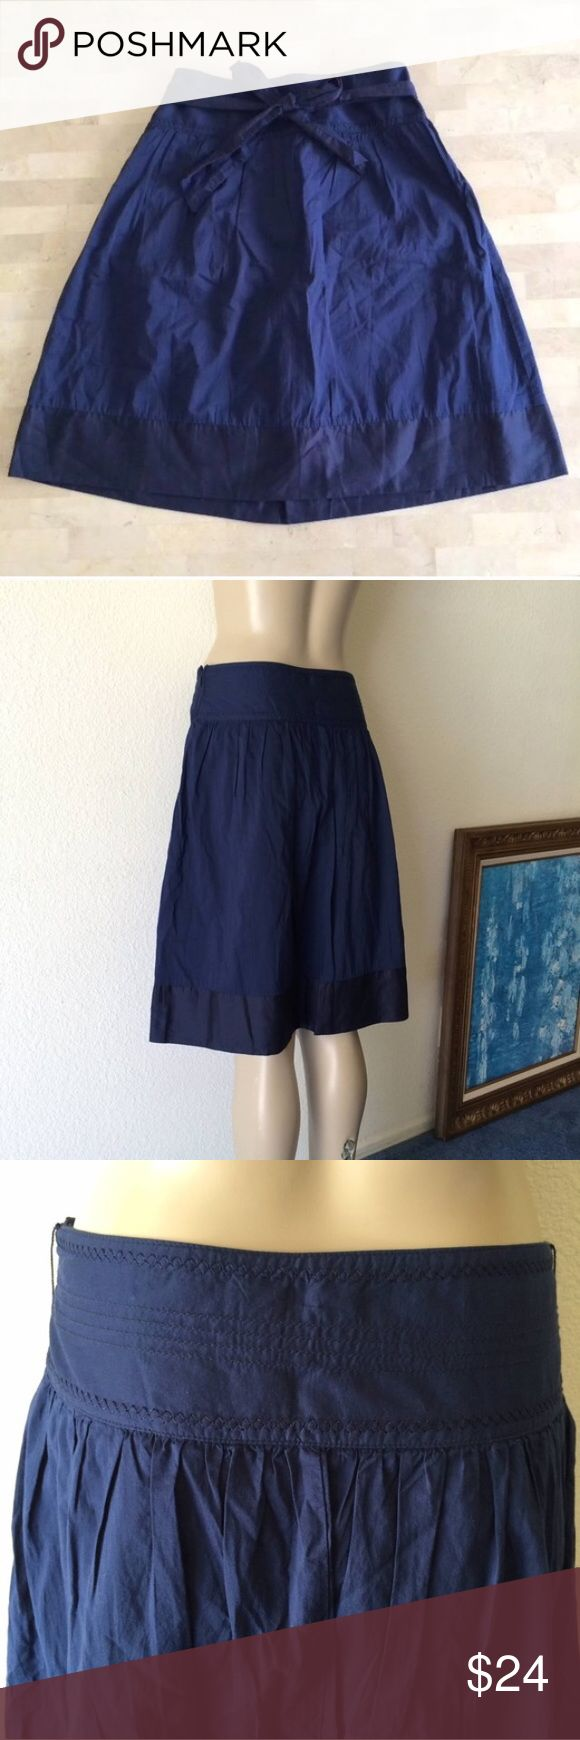 🚫SOLD🚫 Dark Navy Blue A-line Knee Length Skirt Knee length skirt w/ sweet boho style. Navy blue linen-feeling sort of fabric. Lined. Bottom trim is a little darker w/ a subtle sheen to material. A little stiffer but still has great movement & very comfortable! Waistband has great embroidered accents & ruching around waistband seam gives skirt even more of a flowy look. Wear w/ or w/out tie. Worn twice, in LIKE-NEW CONDITION!! Marked size 0 but runs big, best fits a size 2, I think. **Top…